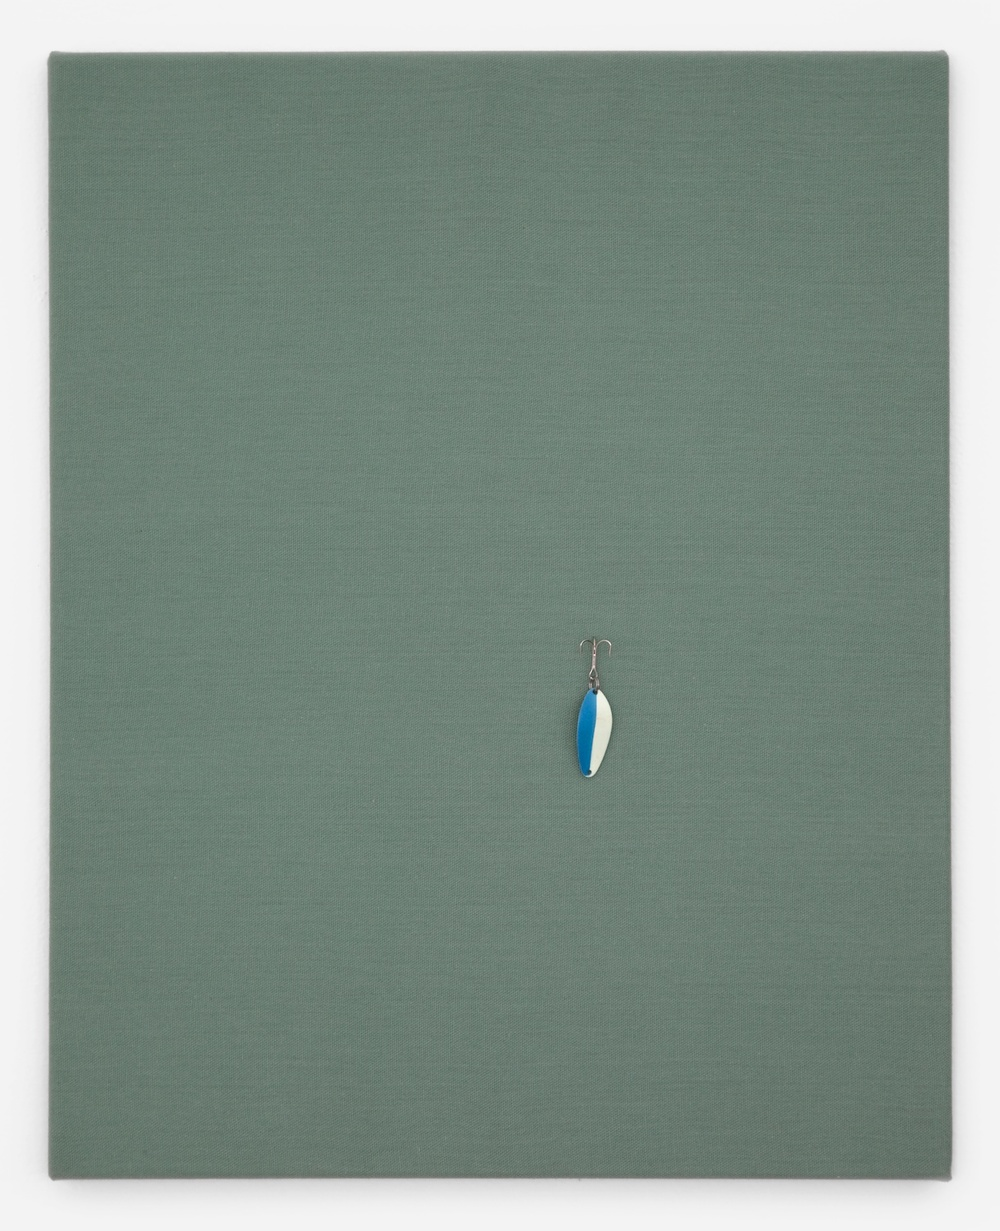 "Paul Cowan Untitled 2011 Fishing lure on canvas 20"" x 16"" PC003"